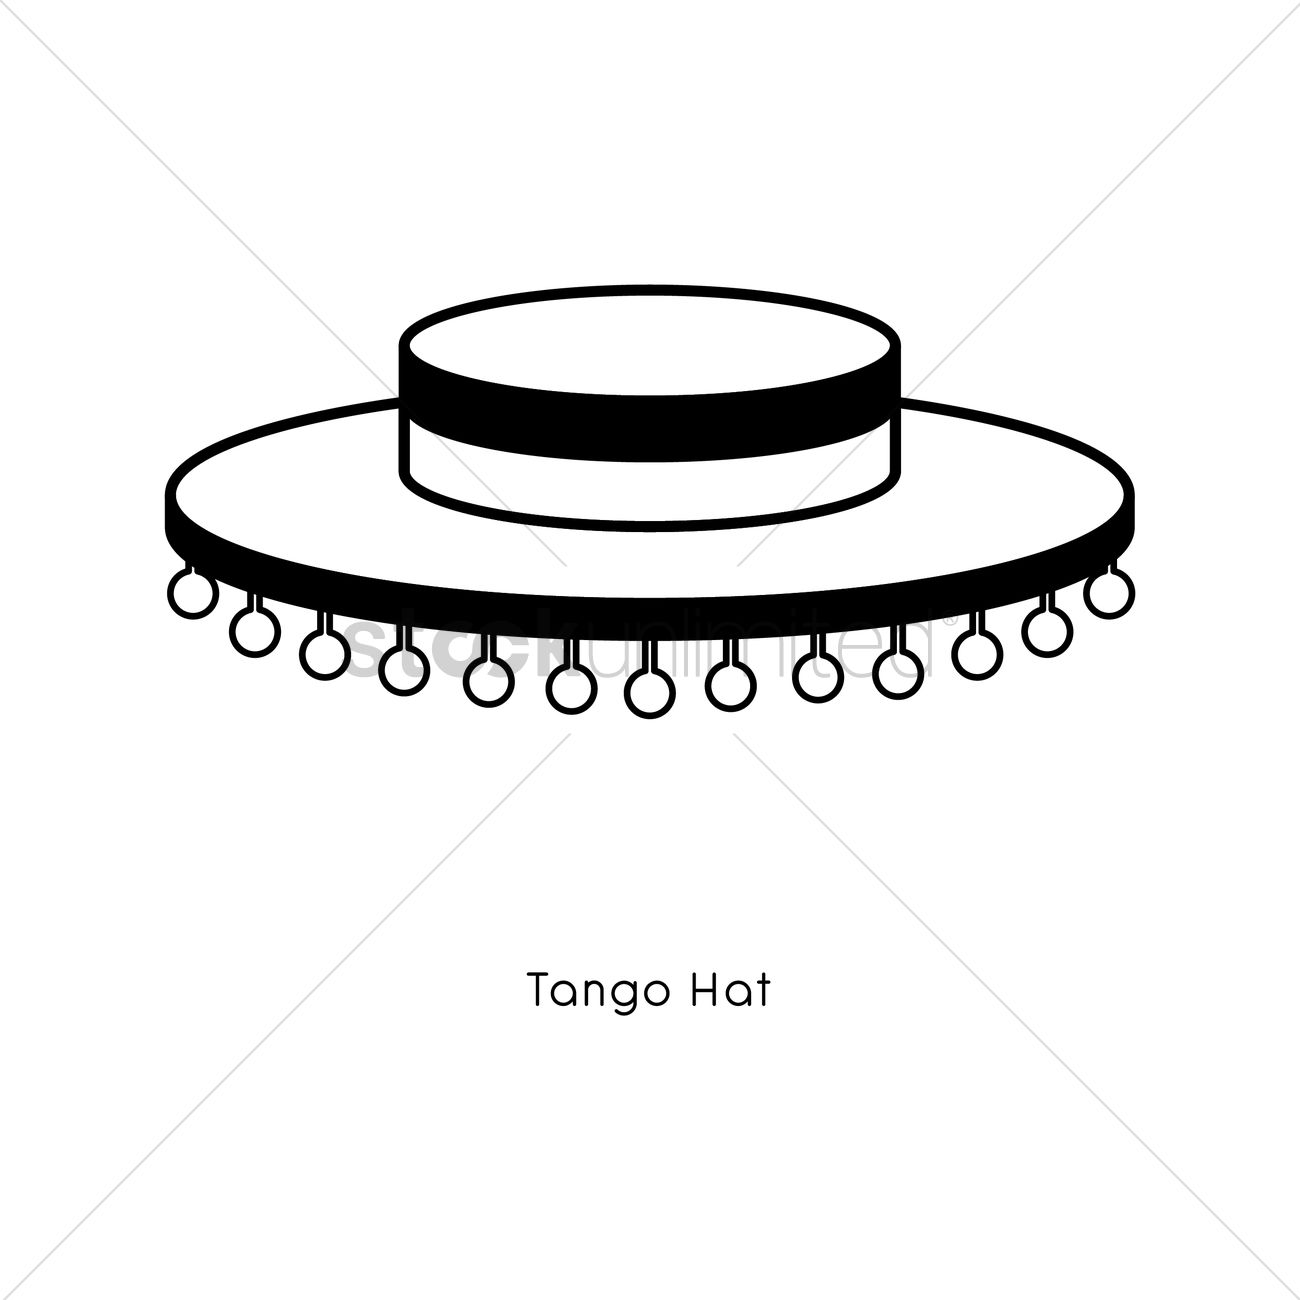 Spanish folkloric hat Vector Image - 1570513   StockUnlimited